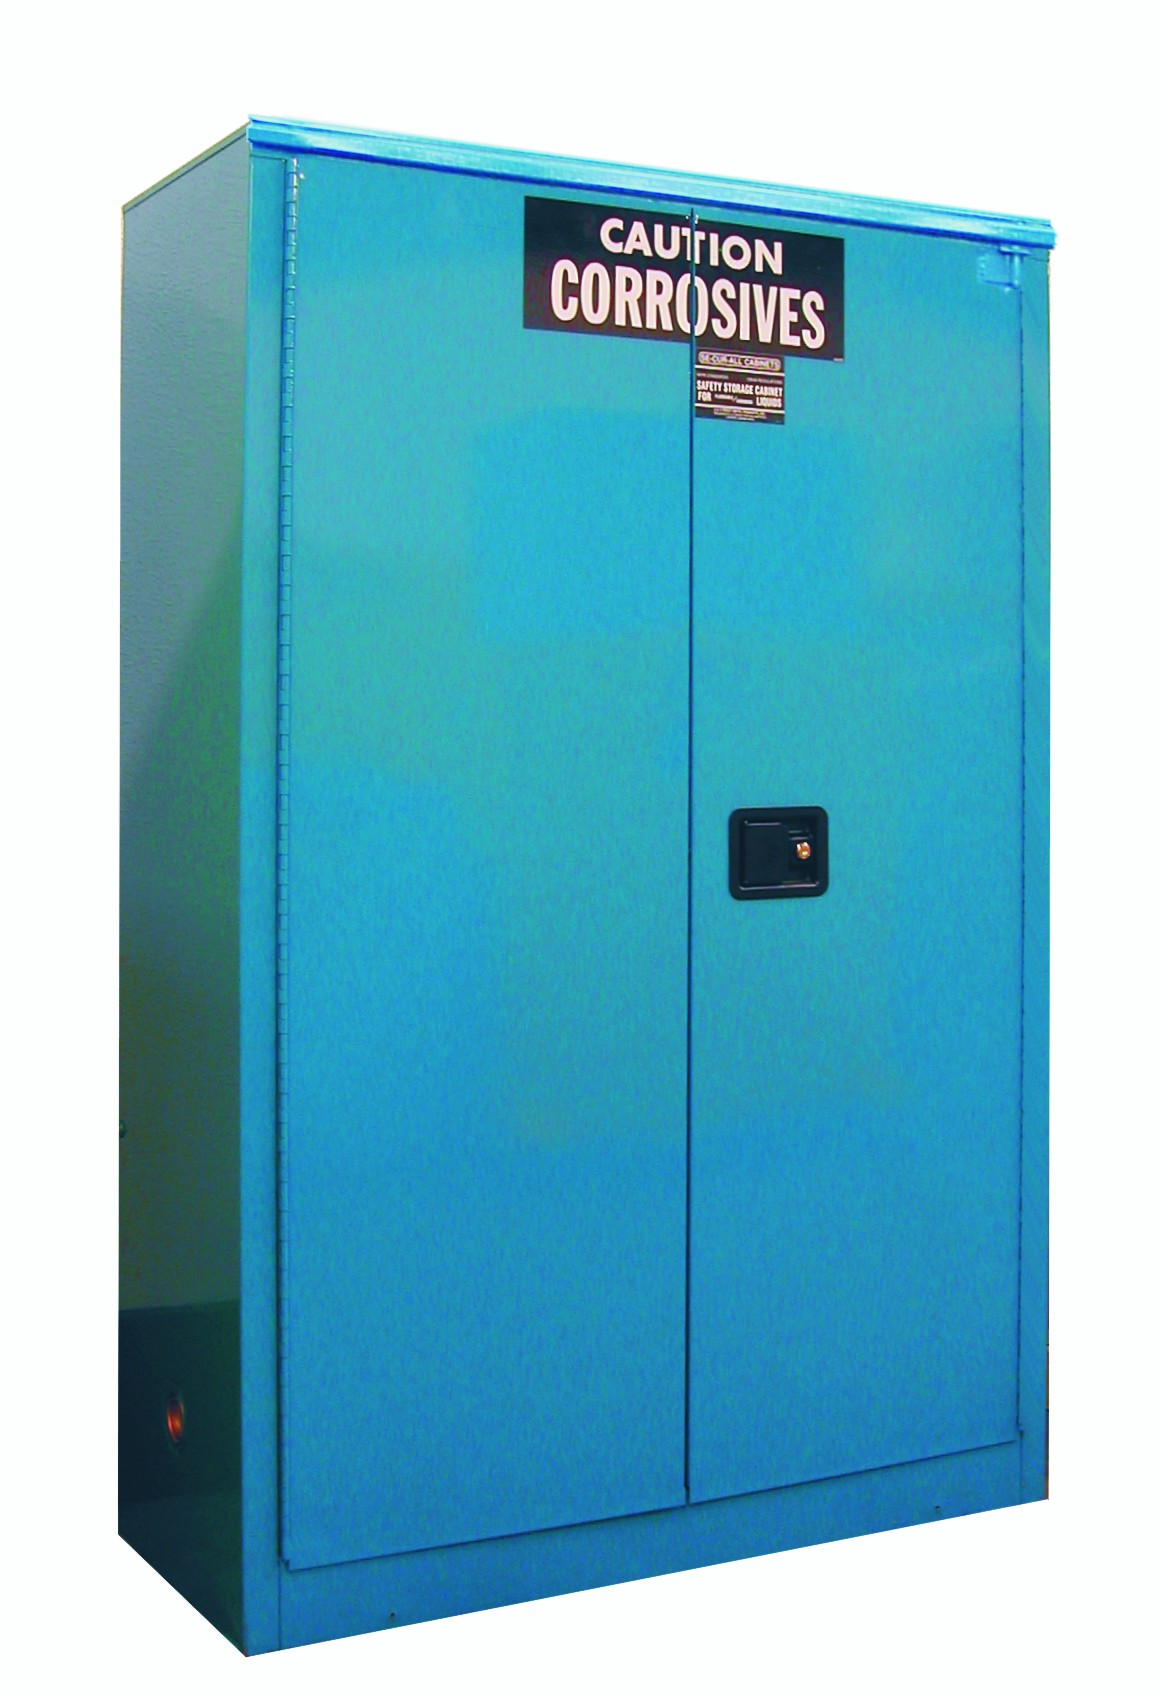 C145 - Acid/Corrosive Storage Cabinet - 45 Gal. Self-Latch Standard 2-Door